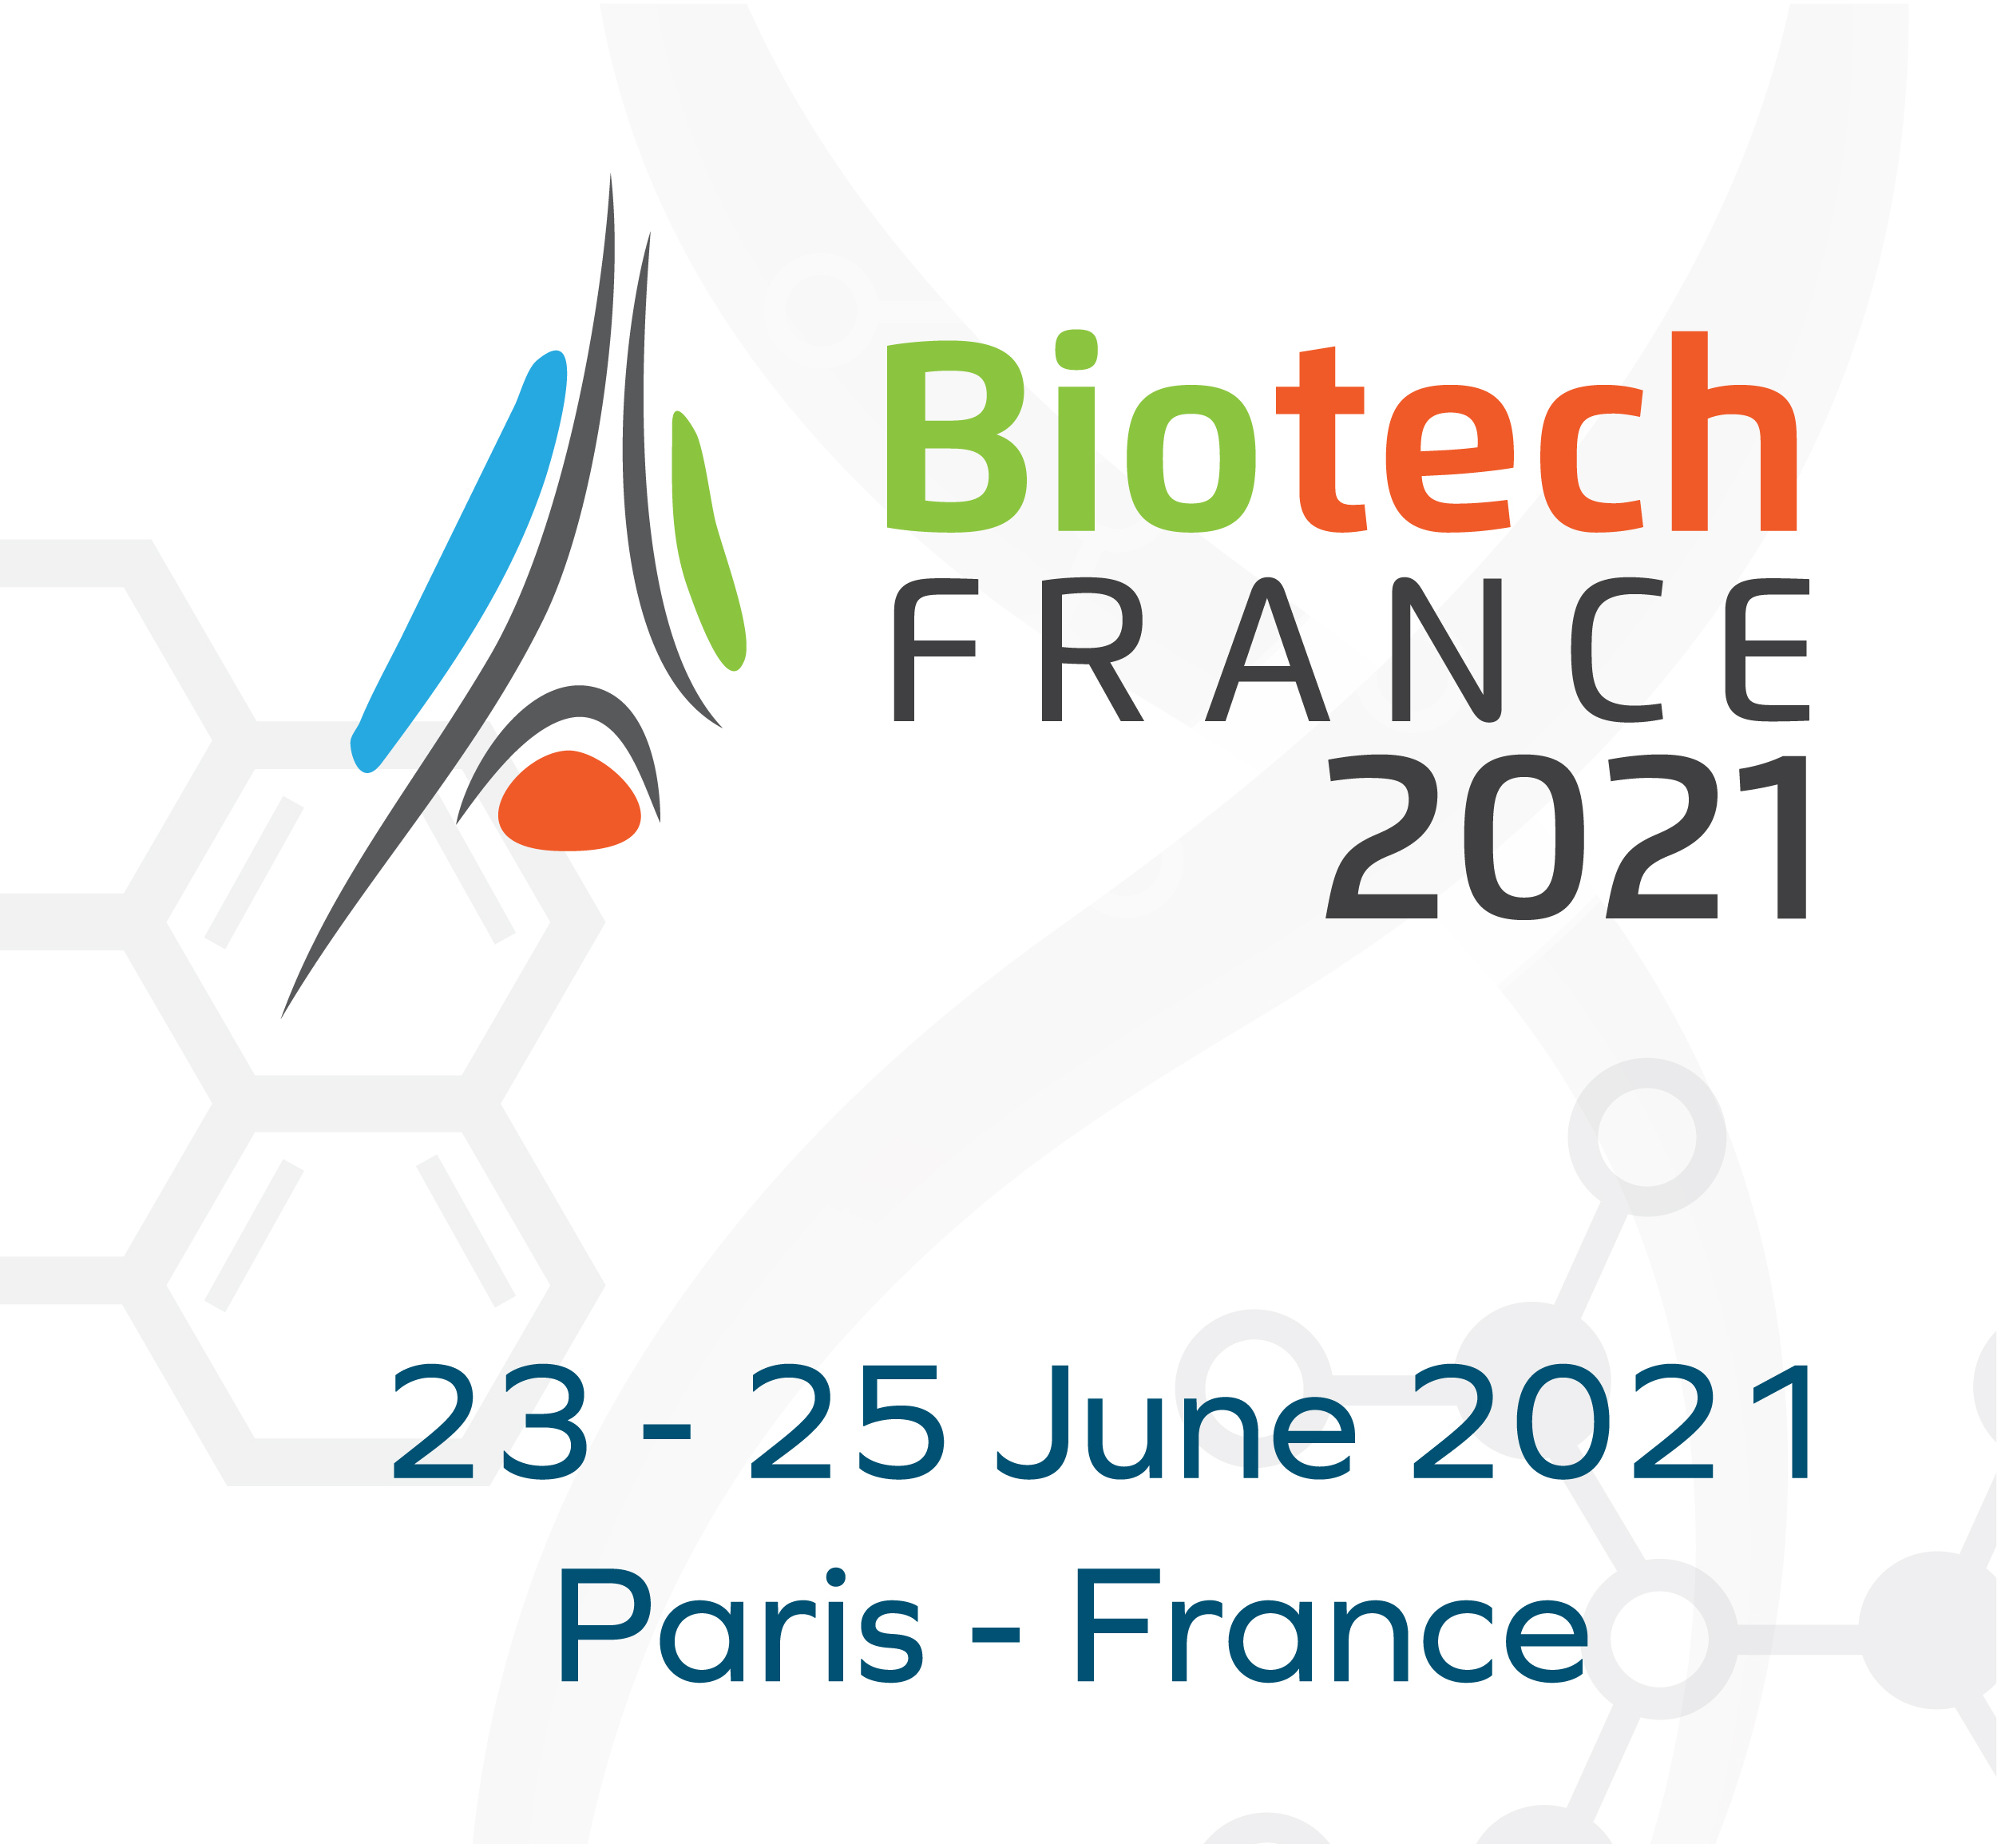 Biotech France 2021 international conference and exhibition, 23 - 25 June 2021, Paris, France